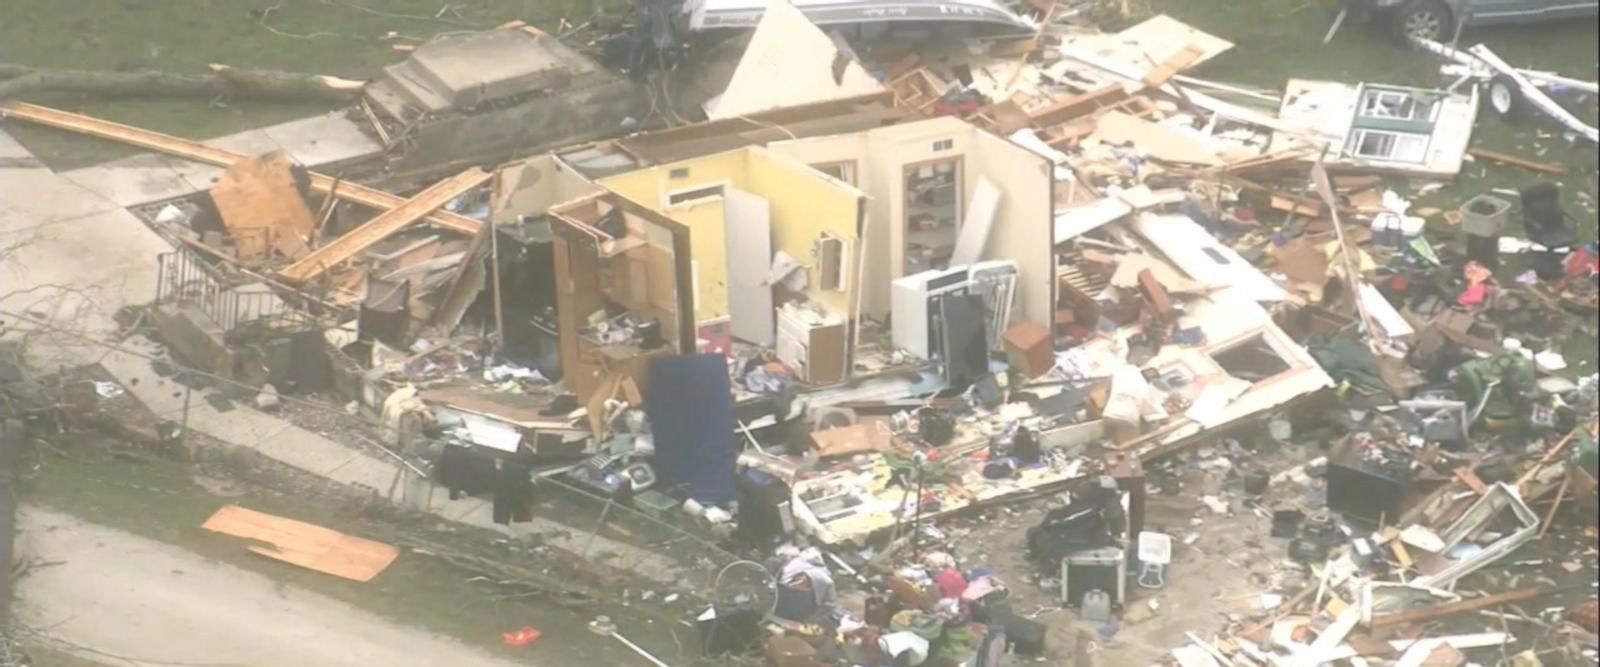 Much of the widespread damage was seen in Ottawa, Illinois.